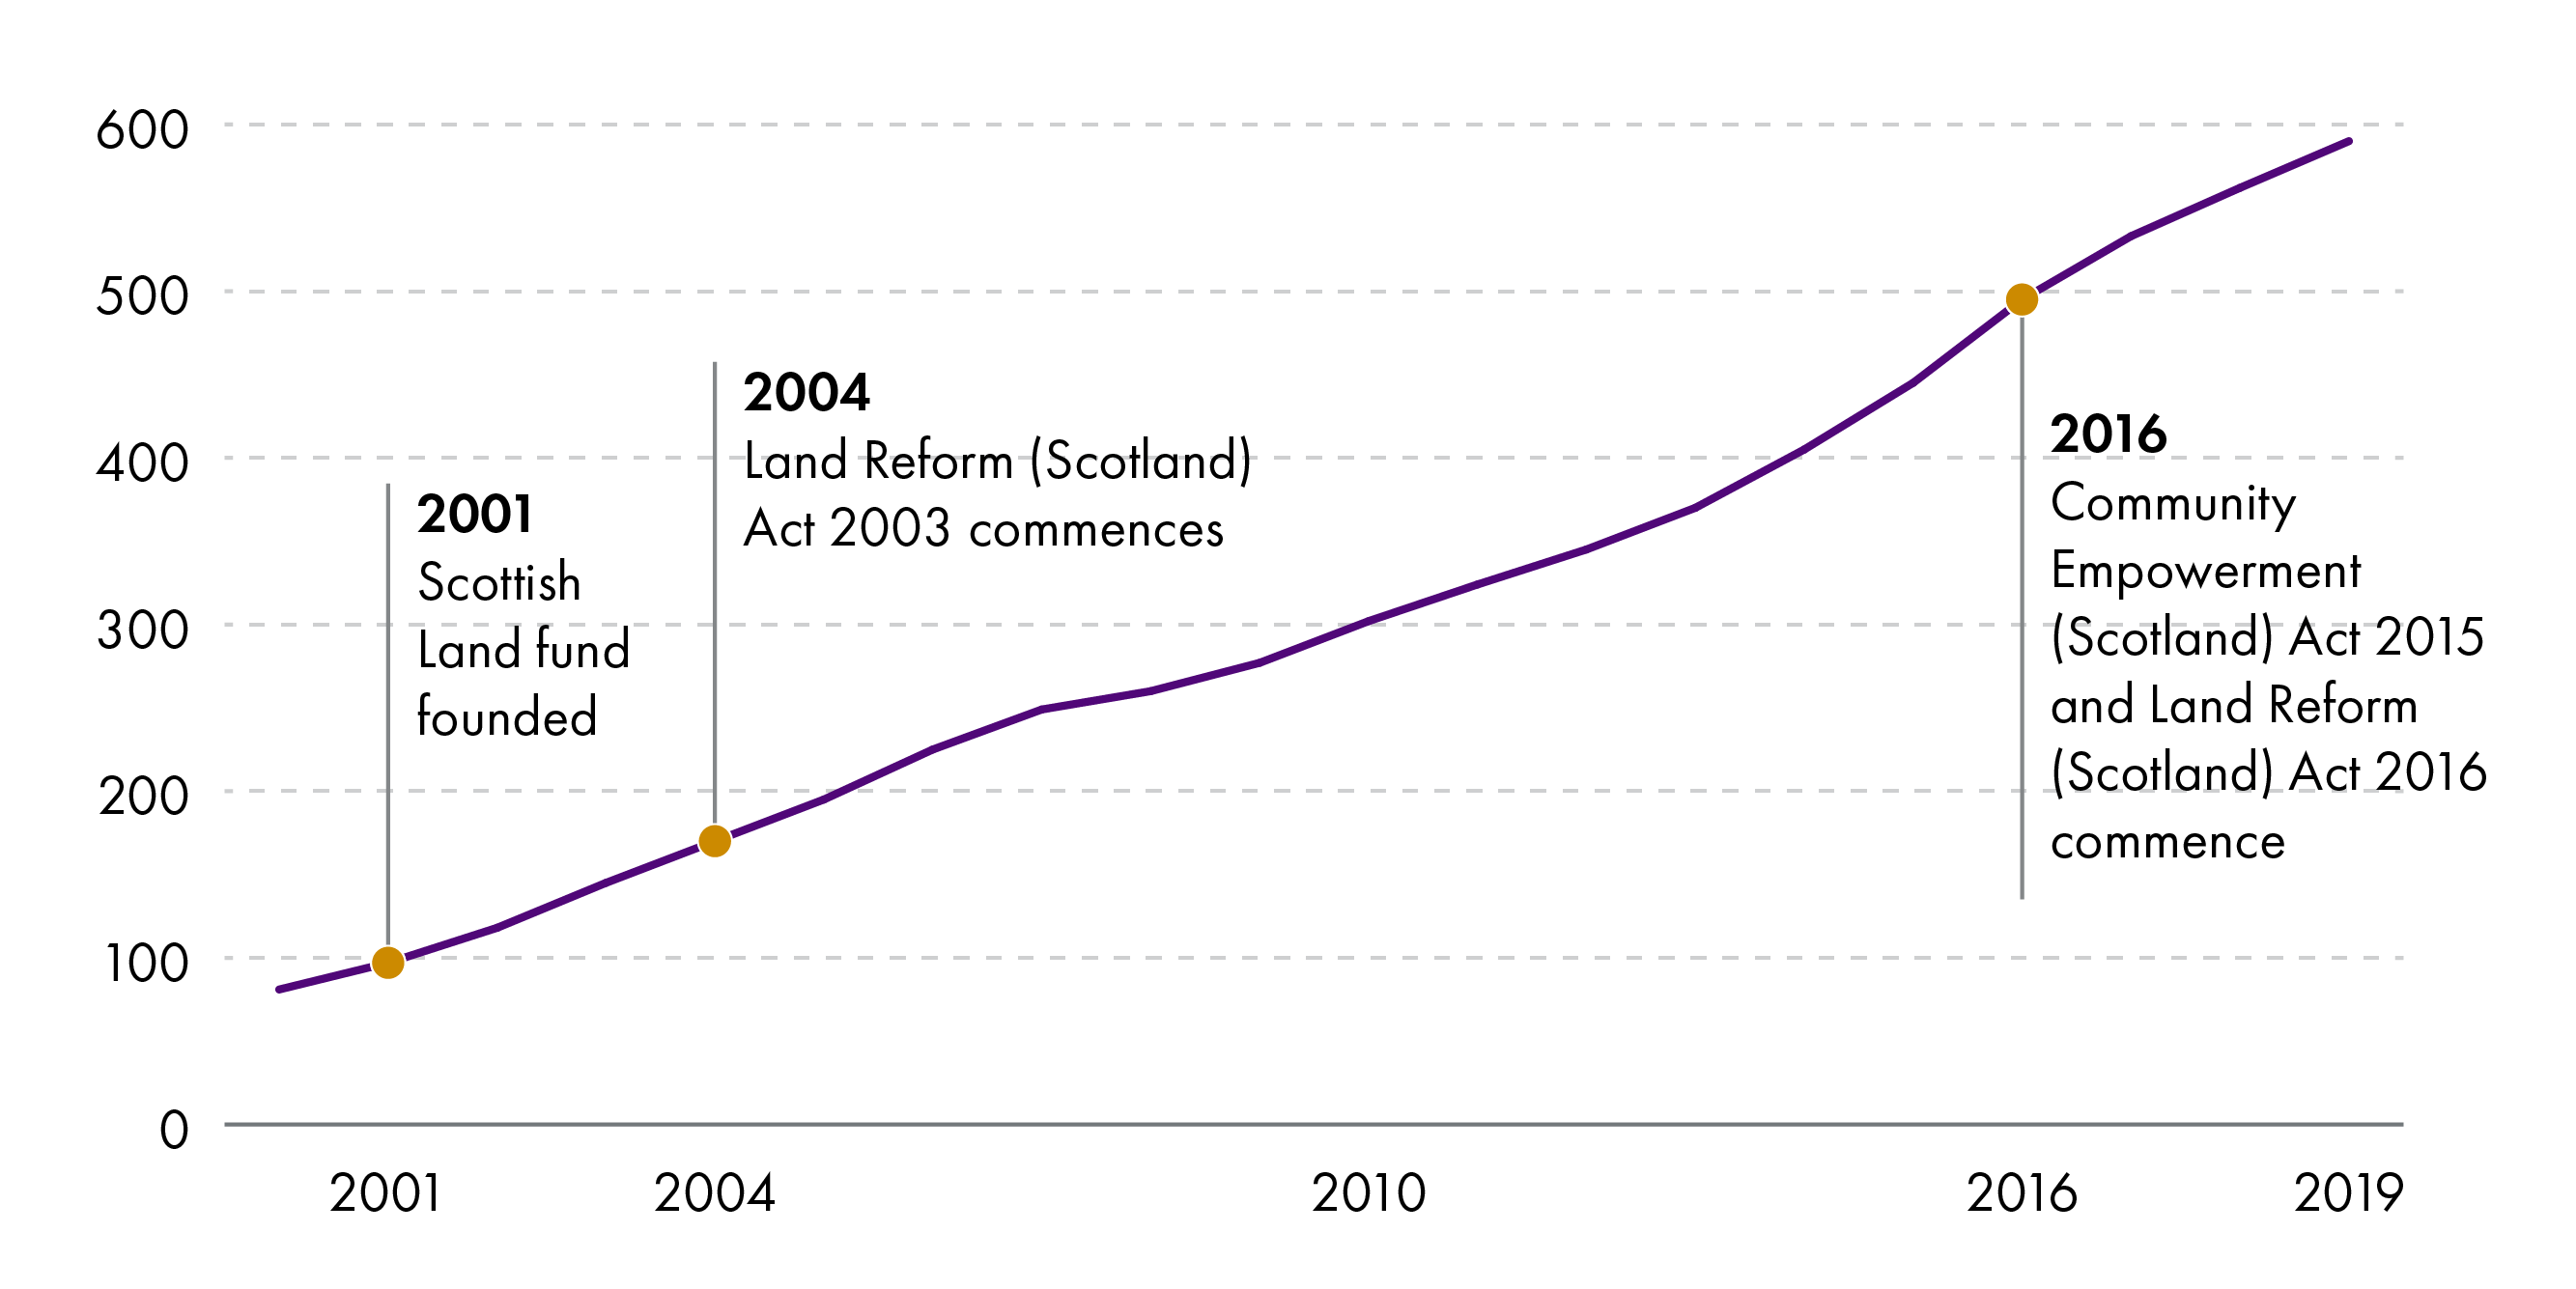 The increase in the number of assets in community ownership each year since 2001. Includes dates of significant legislation, including the 2004 Land Reform Act and the implementation of Part 5 of the Community Empowerment Act 2015. The number has increased steadily from around 100 in 2001 to almost 600 in 2019.